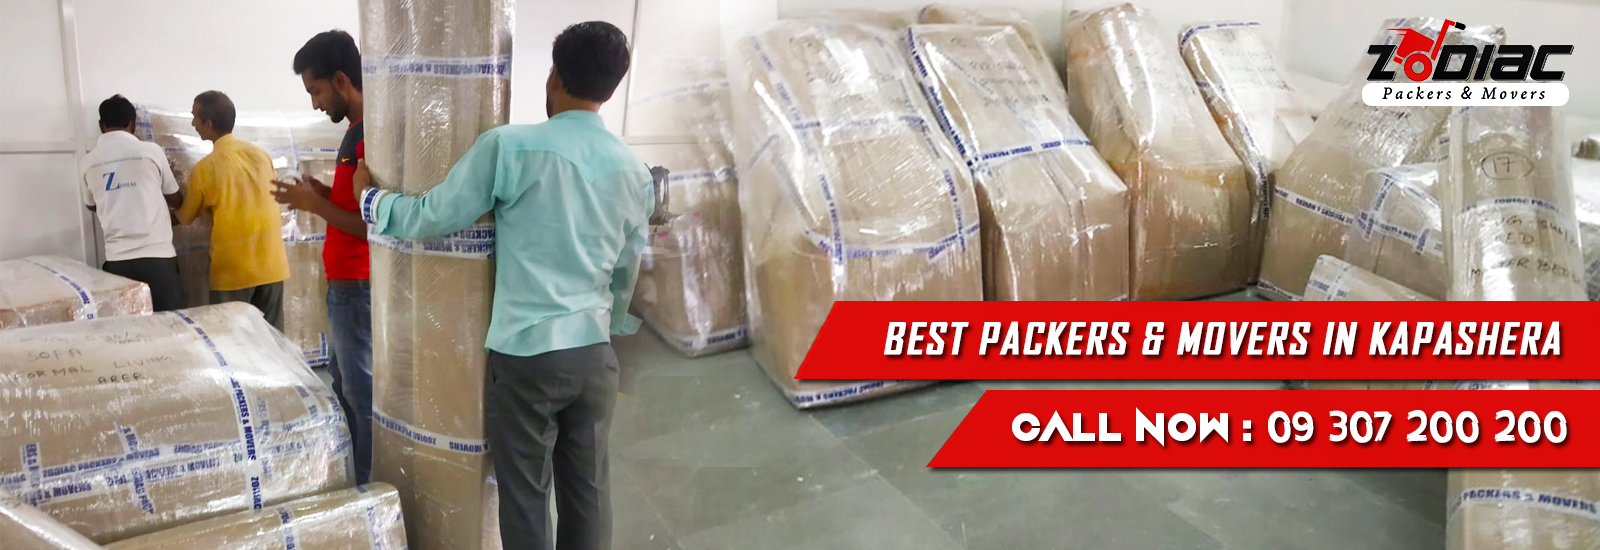 Packers and Movers in Kapashera